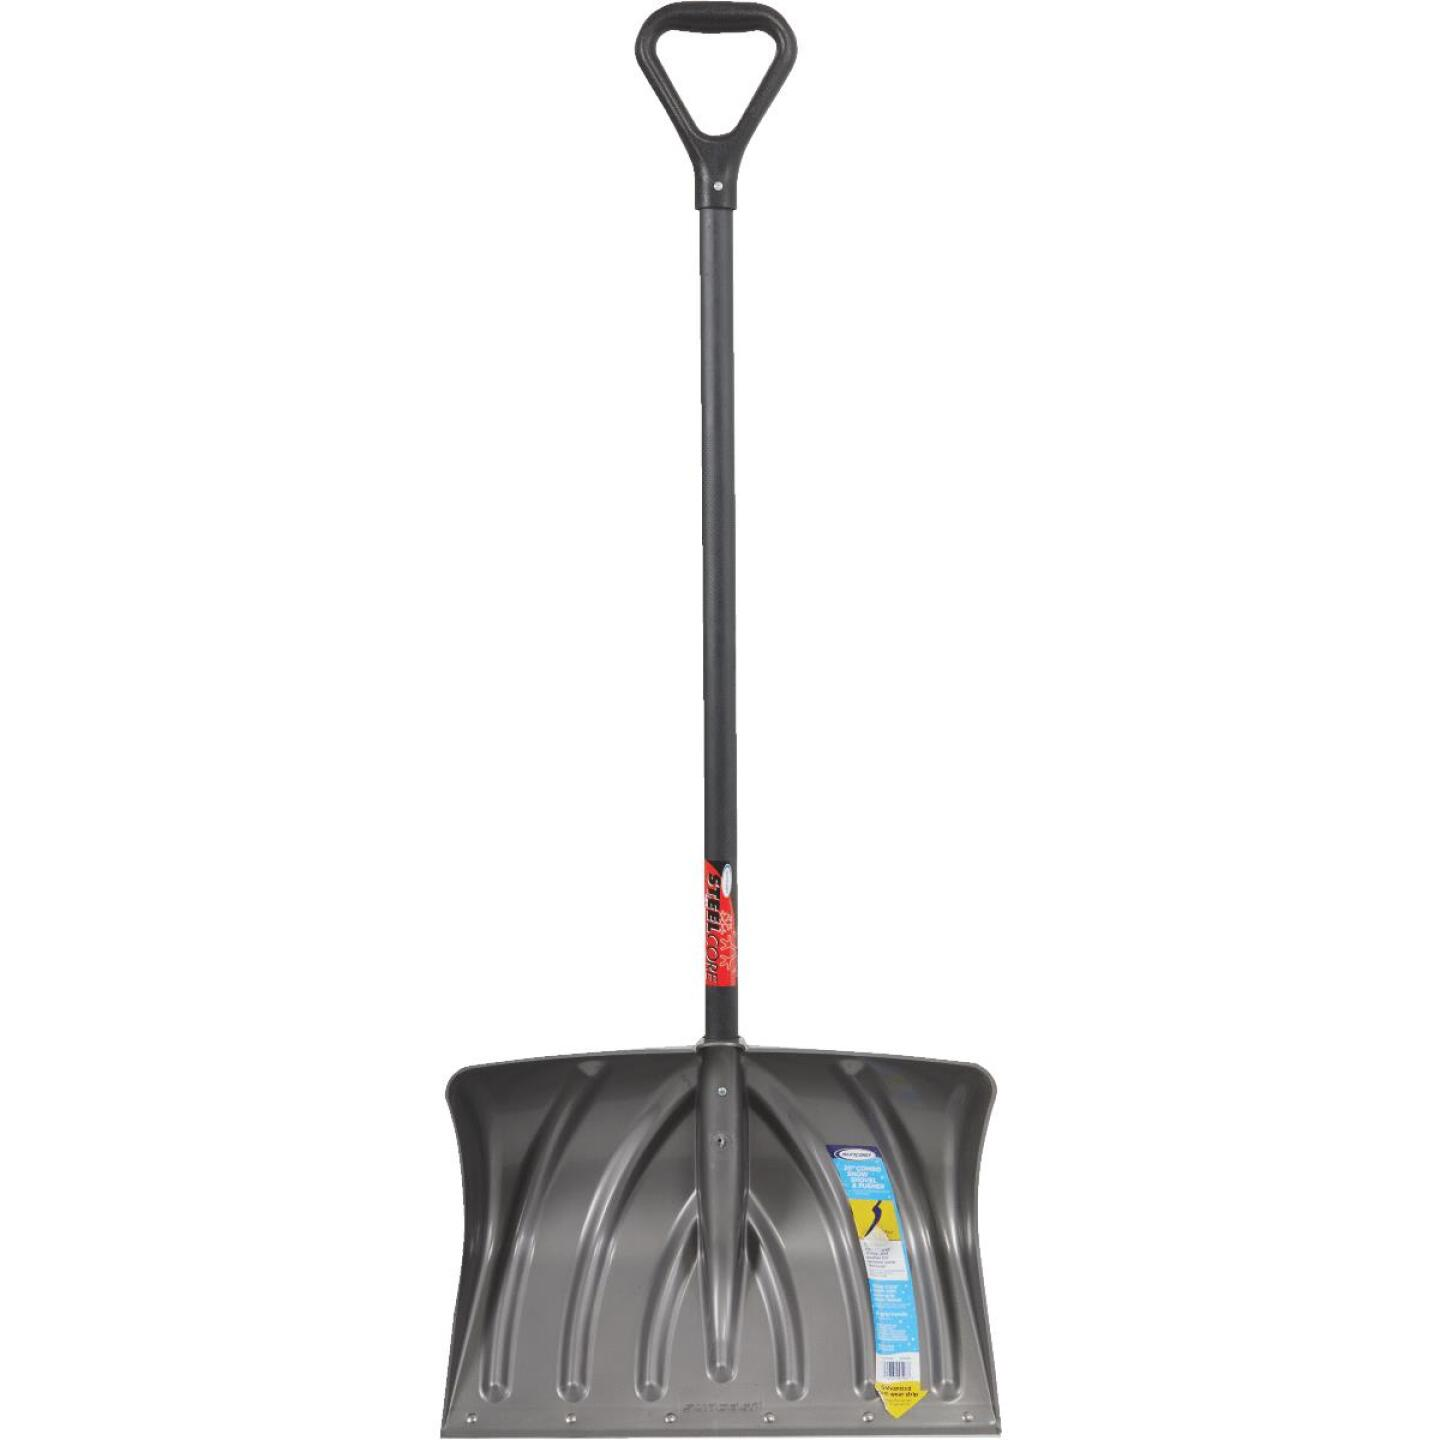 Suncast 20 In. Graphite Snow Shovel & Pusher with 38 In. Steel Handle Image 2